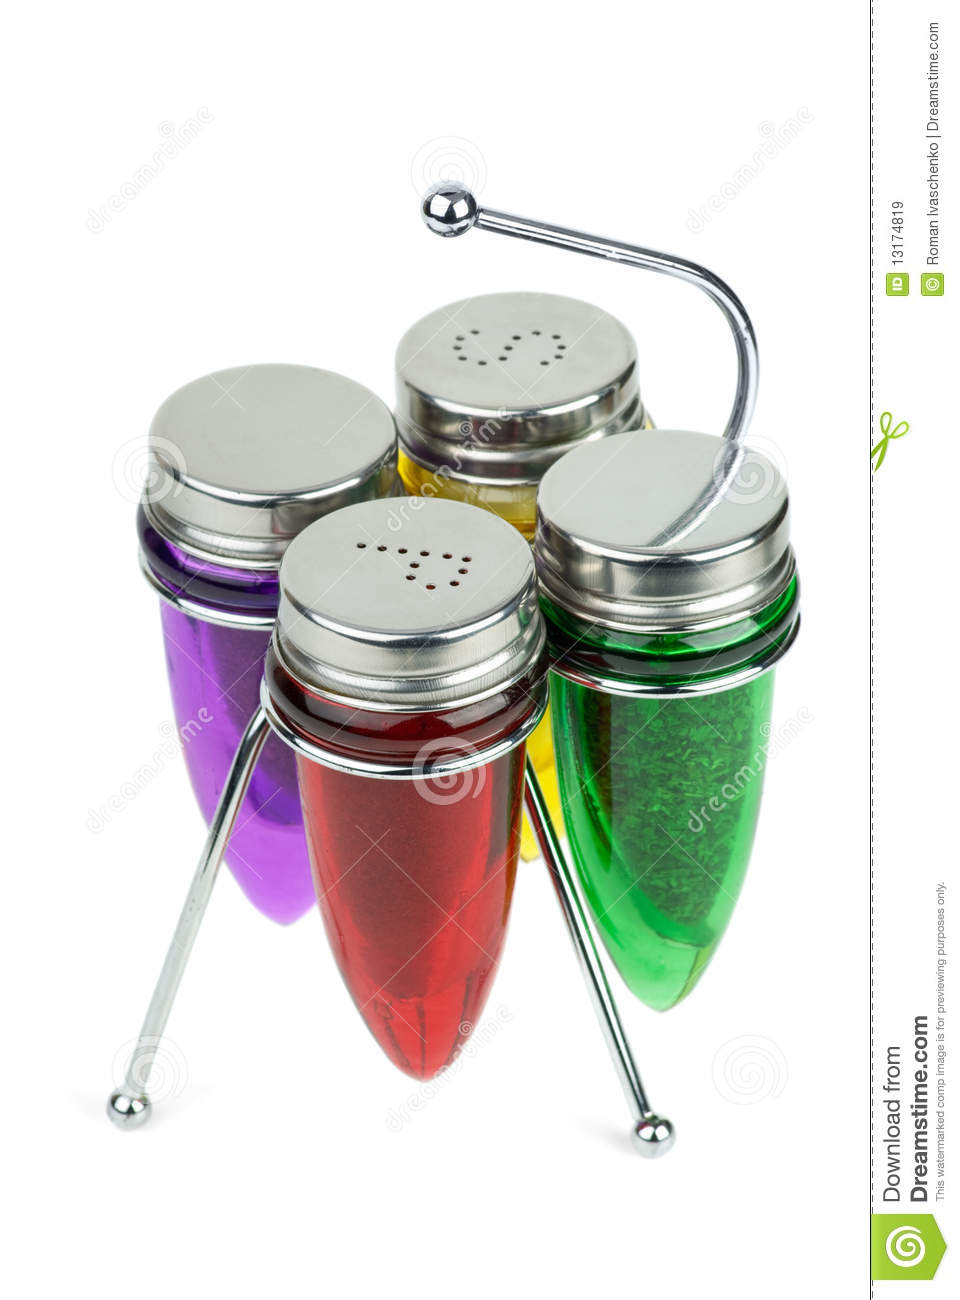 Salt Pepper Shakers And Spice Containers Royalty Free